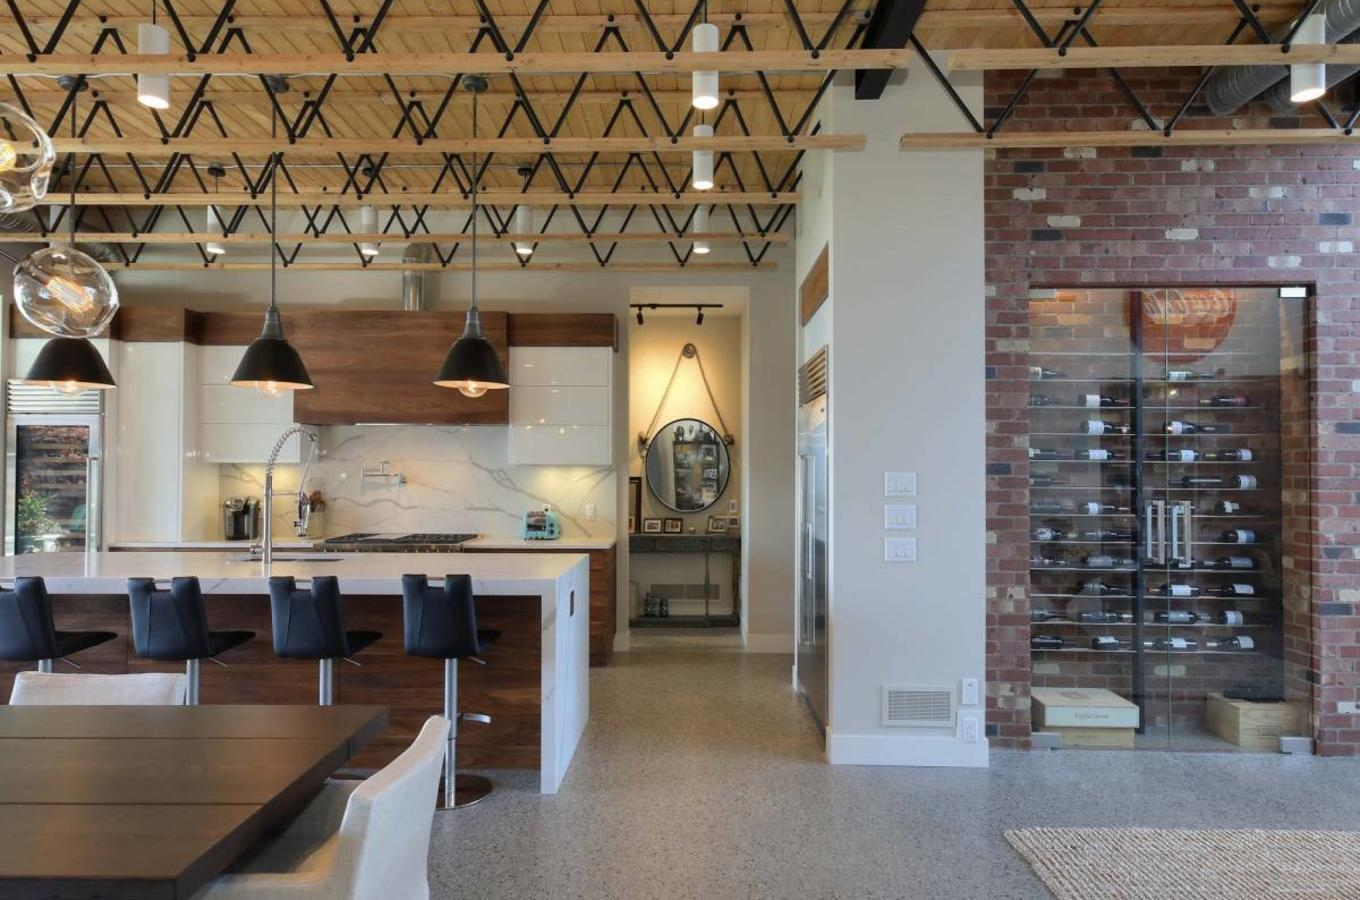 Keys to Kelowna Properties Luxury Vacation Rentals for Airbnb and VRBO